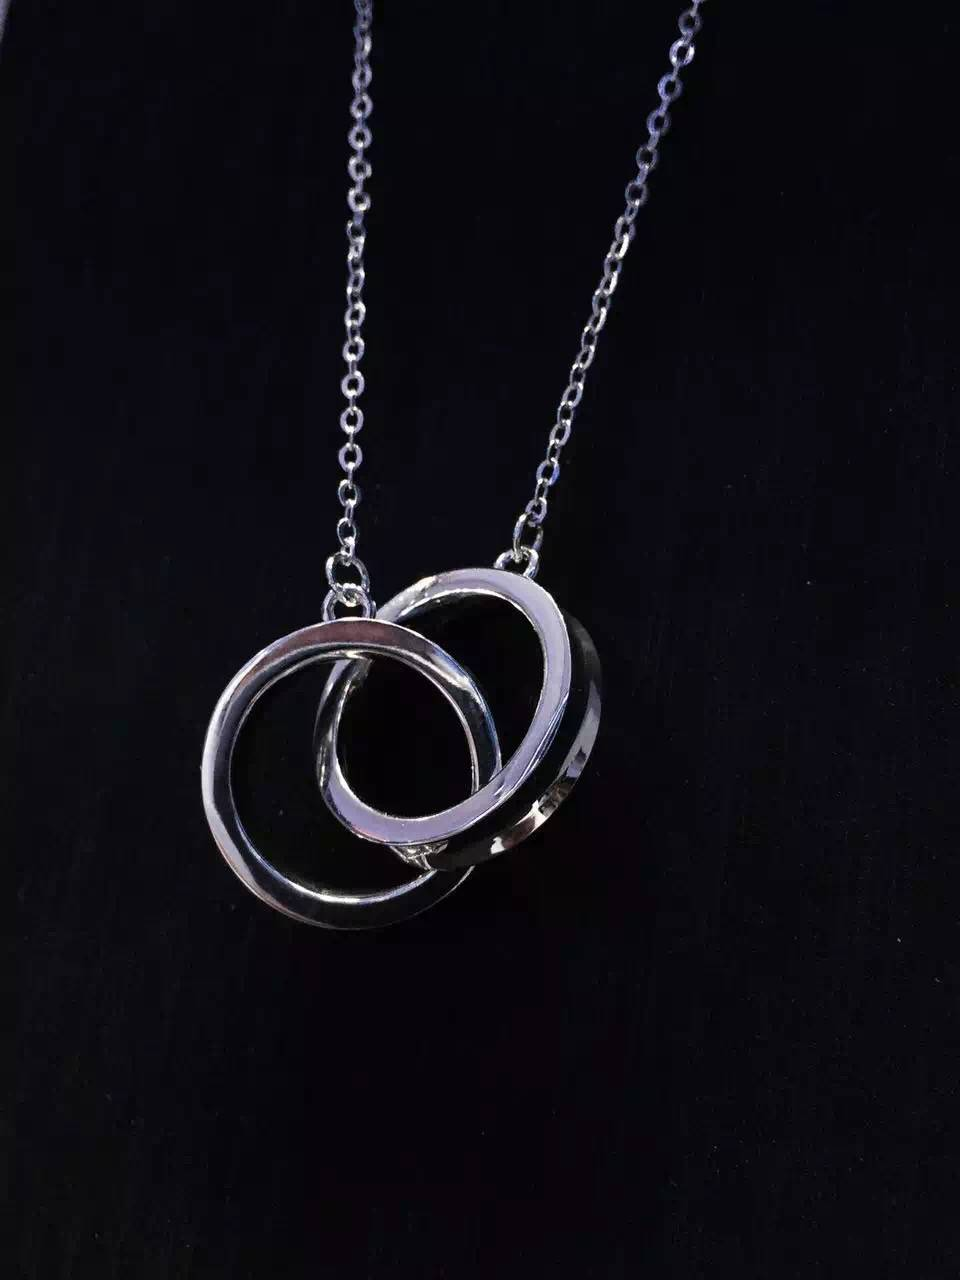 NEFFLY NEW ARRIVAL 925 silver Double loop high-grade PENDANT NECKLACE free shipping